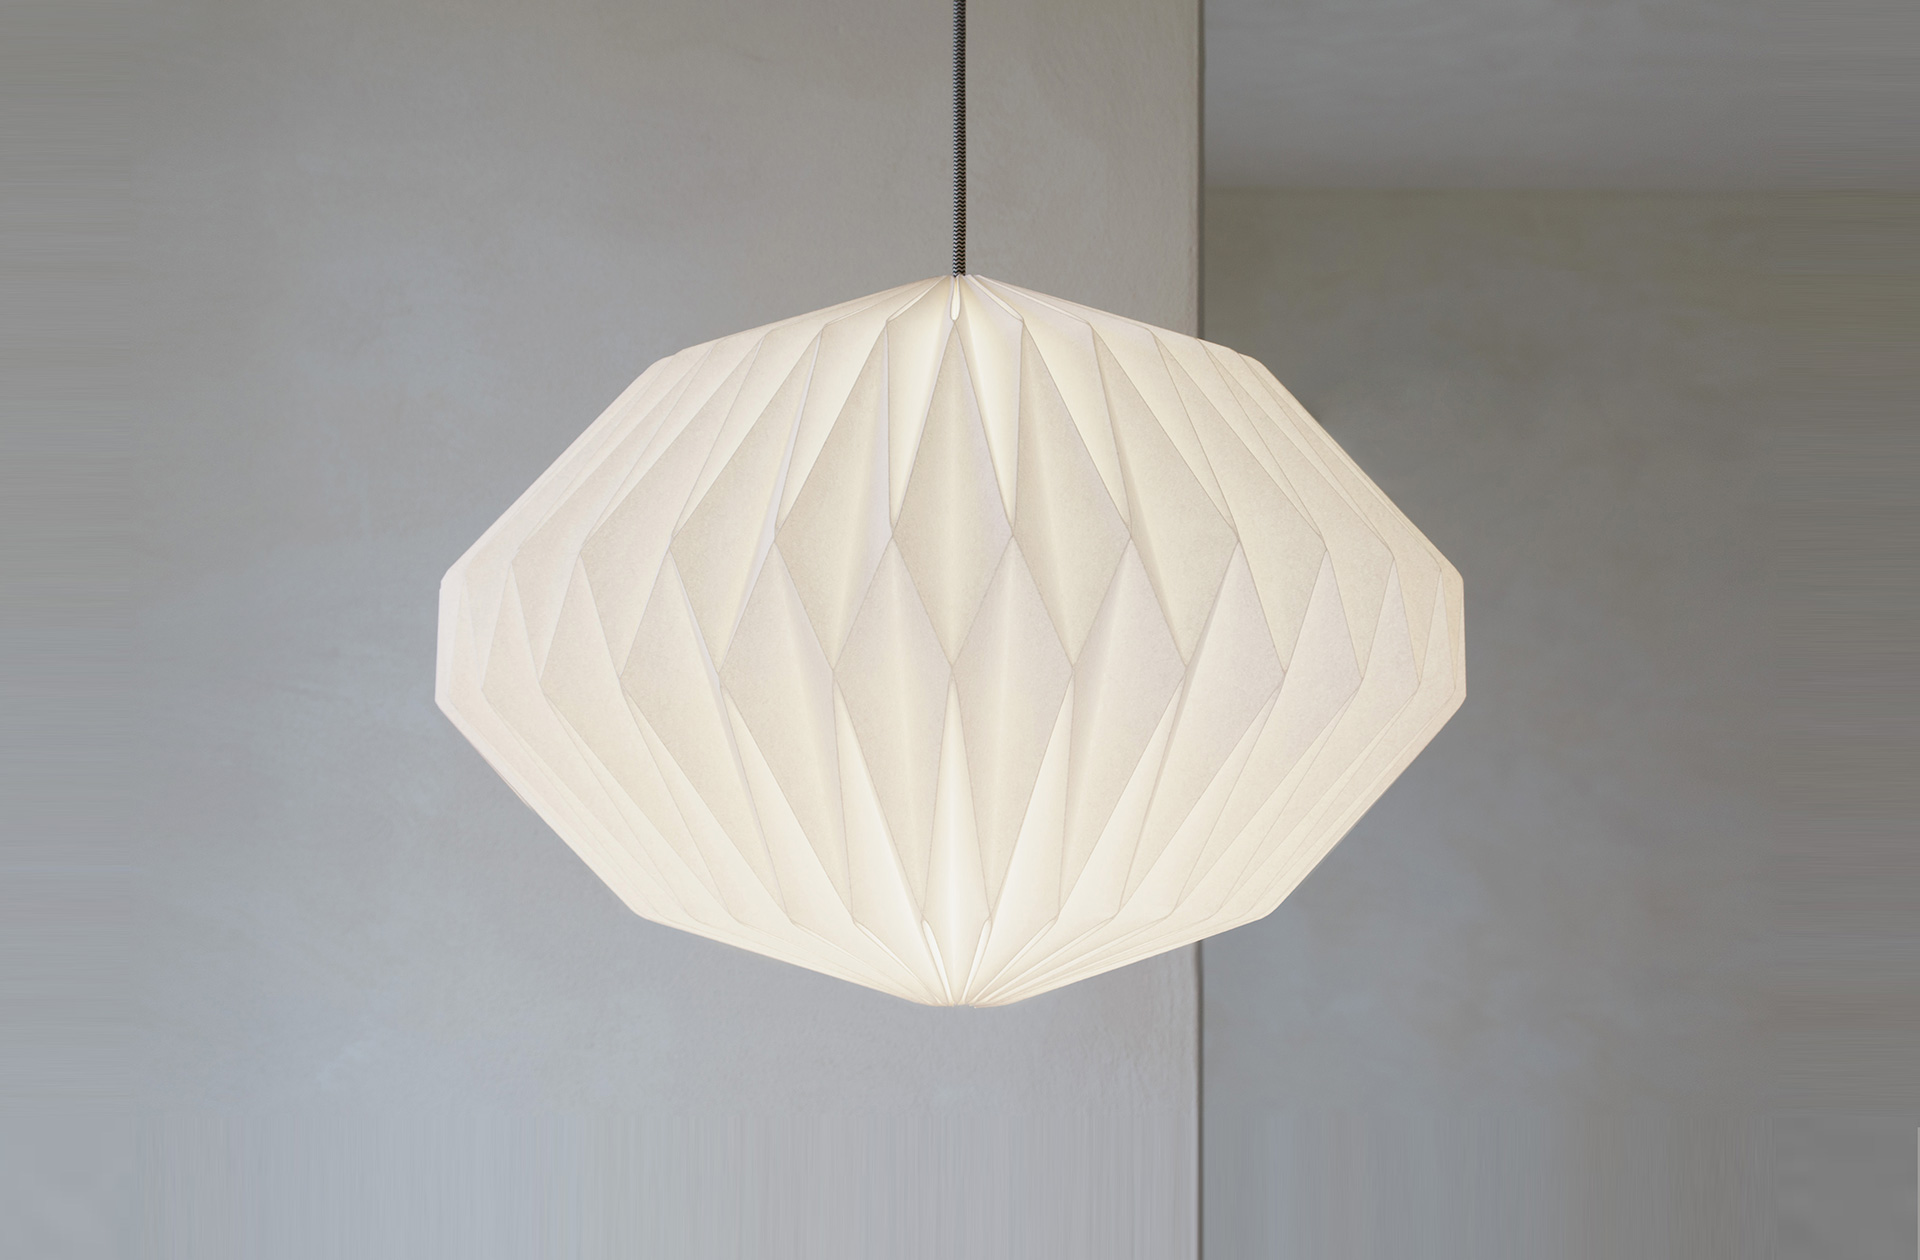 Jutta Mntefering Heaven knows origami lamp shade